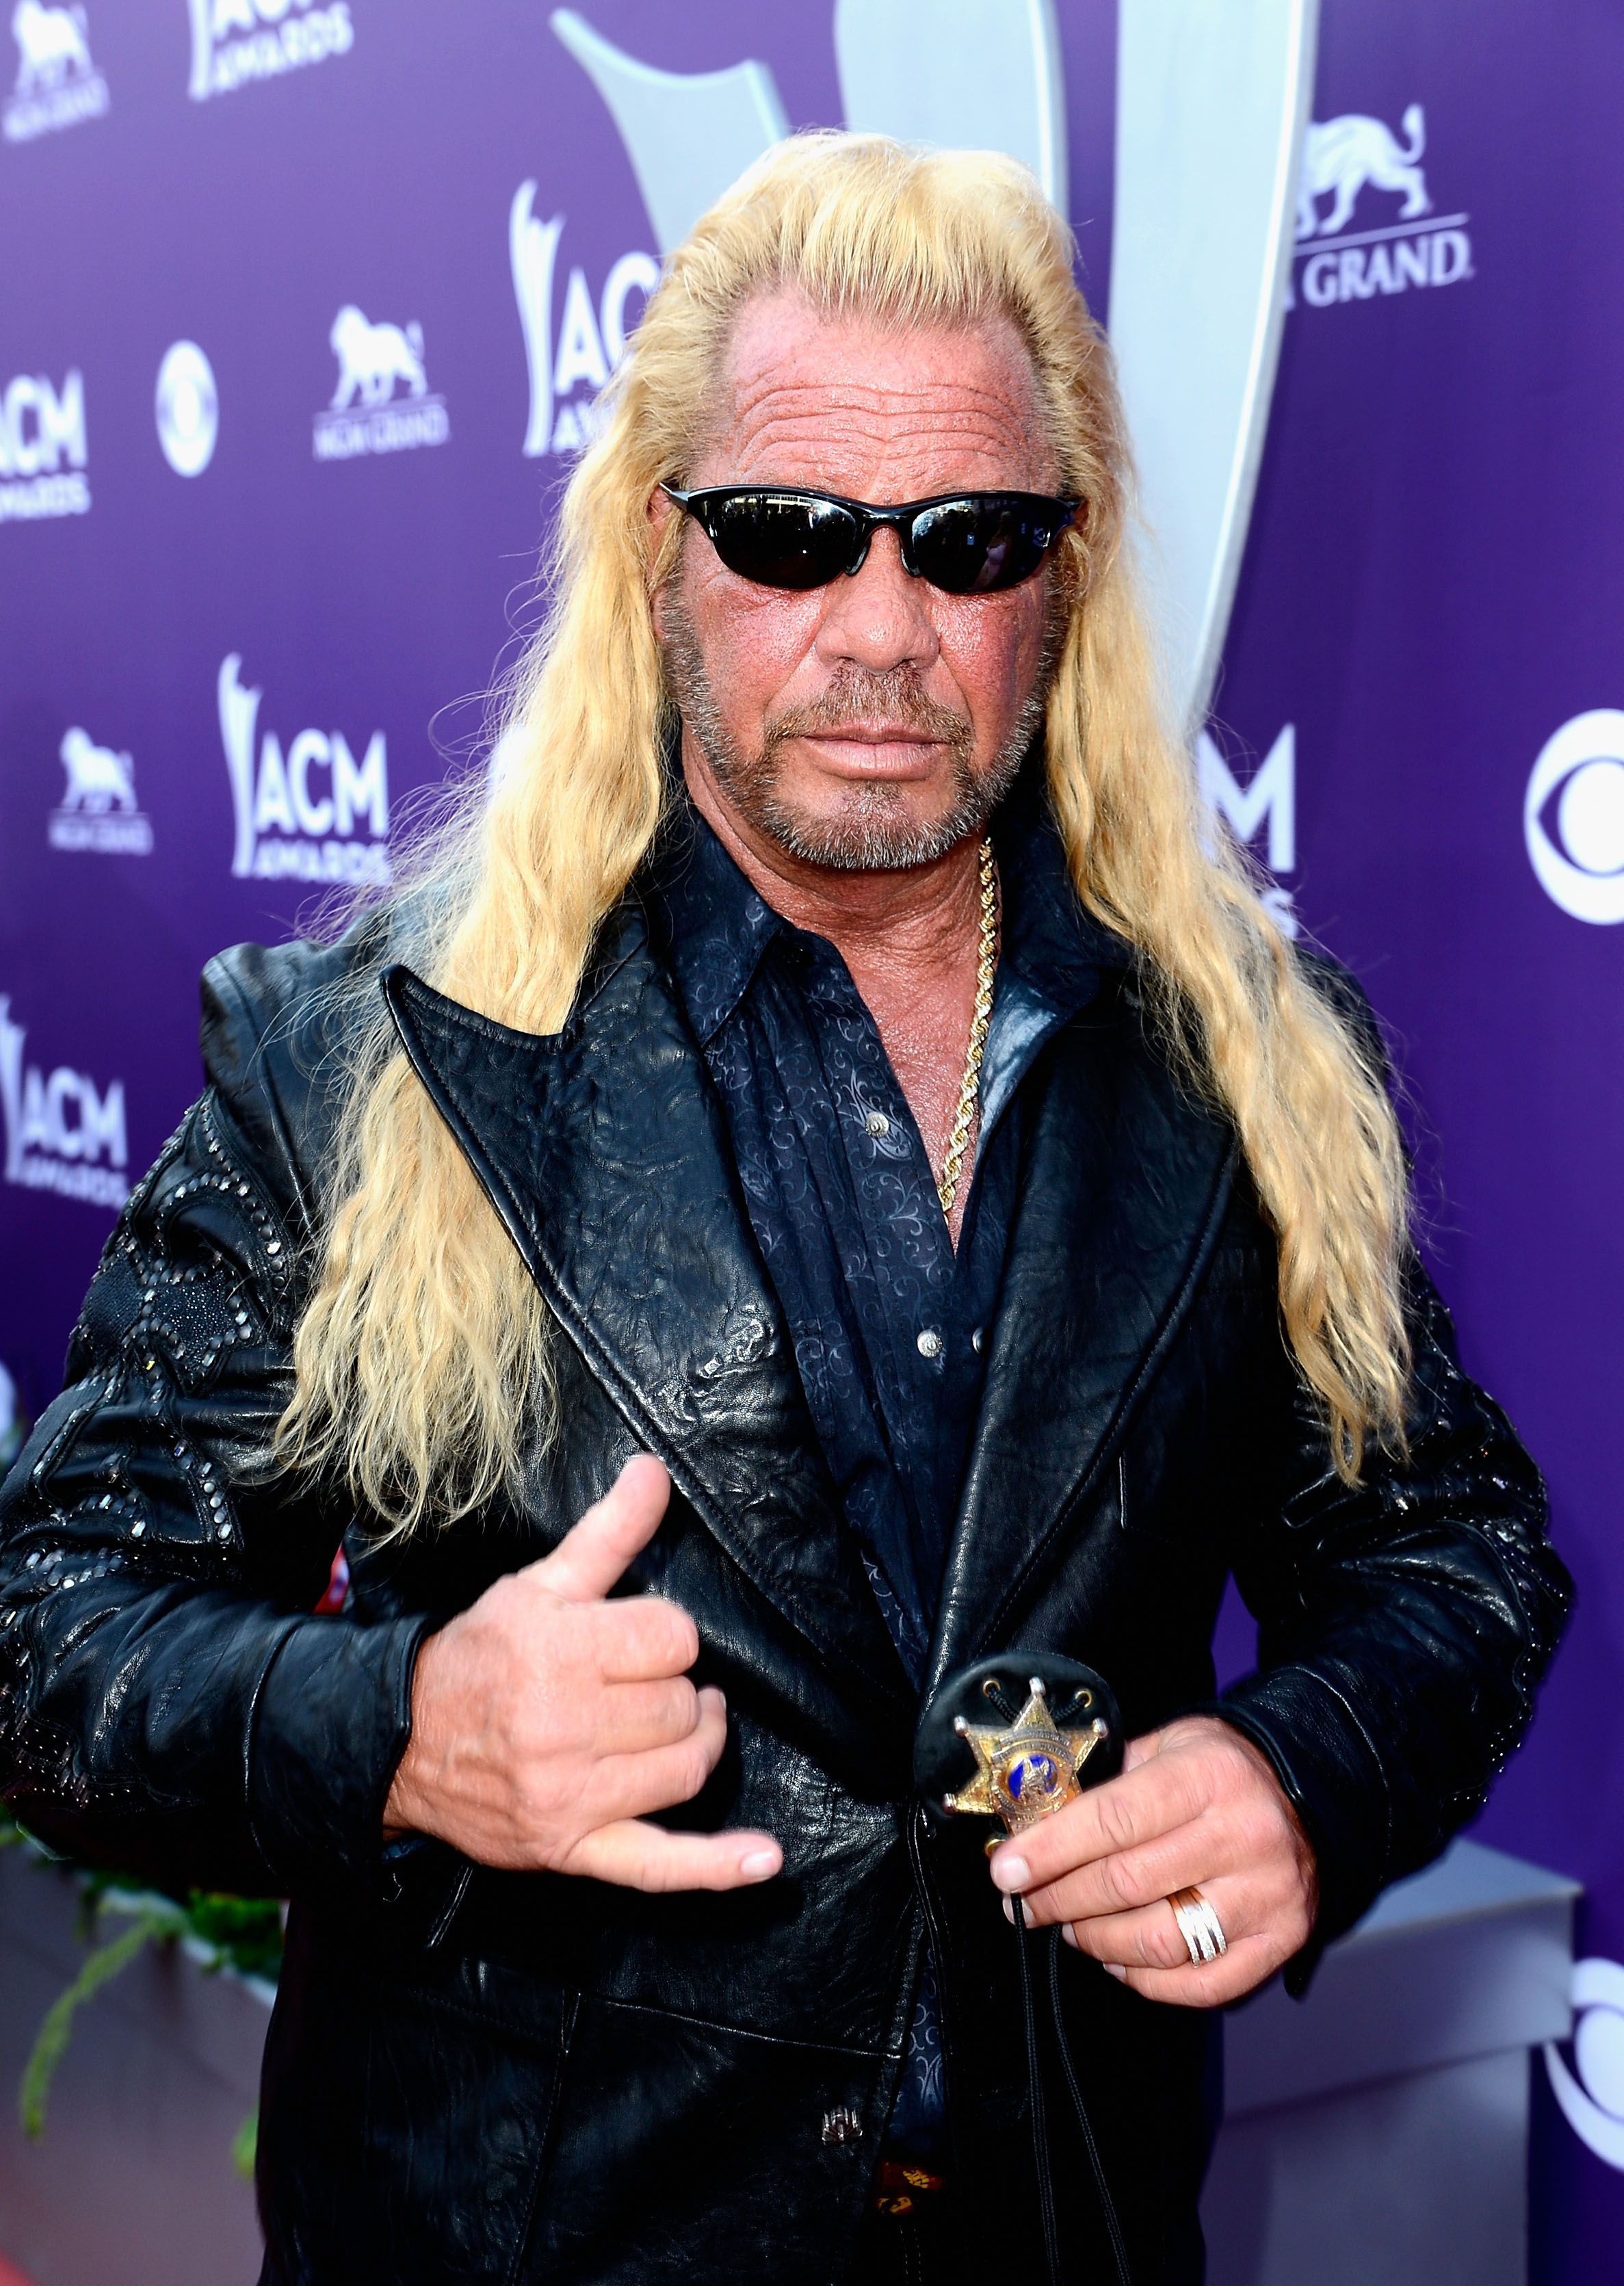 """Duane """"Dog"""" Chapman at the 48th Annual Academy of Country Music Awardson April 7, 2013, in Las Vegas, Nevada   Photo: Frazer Harrison/ACMA2013/Getty Images"""